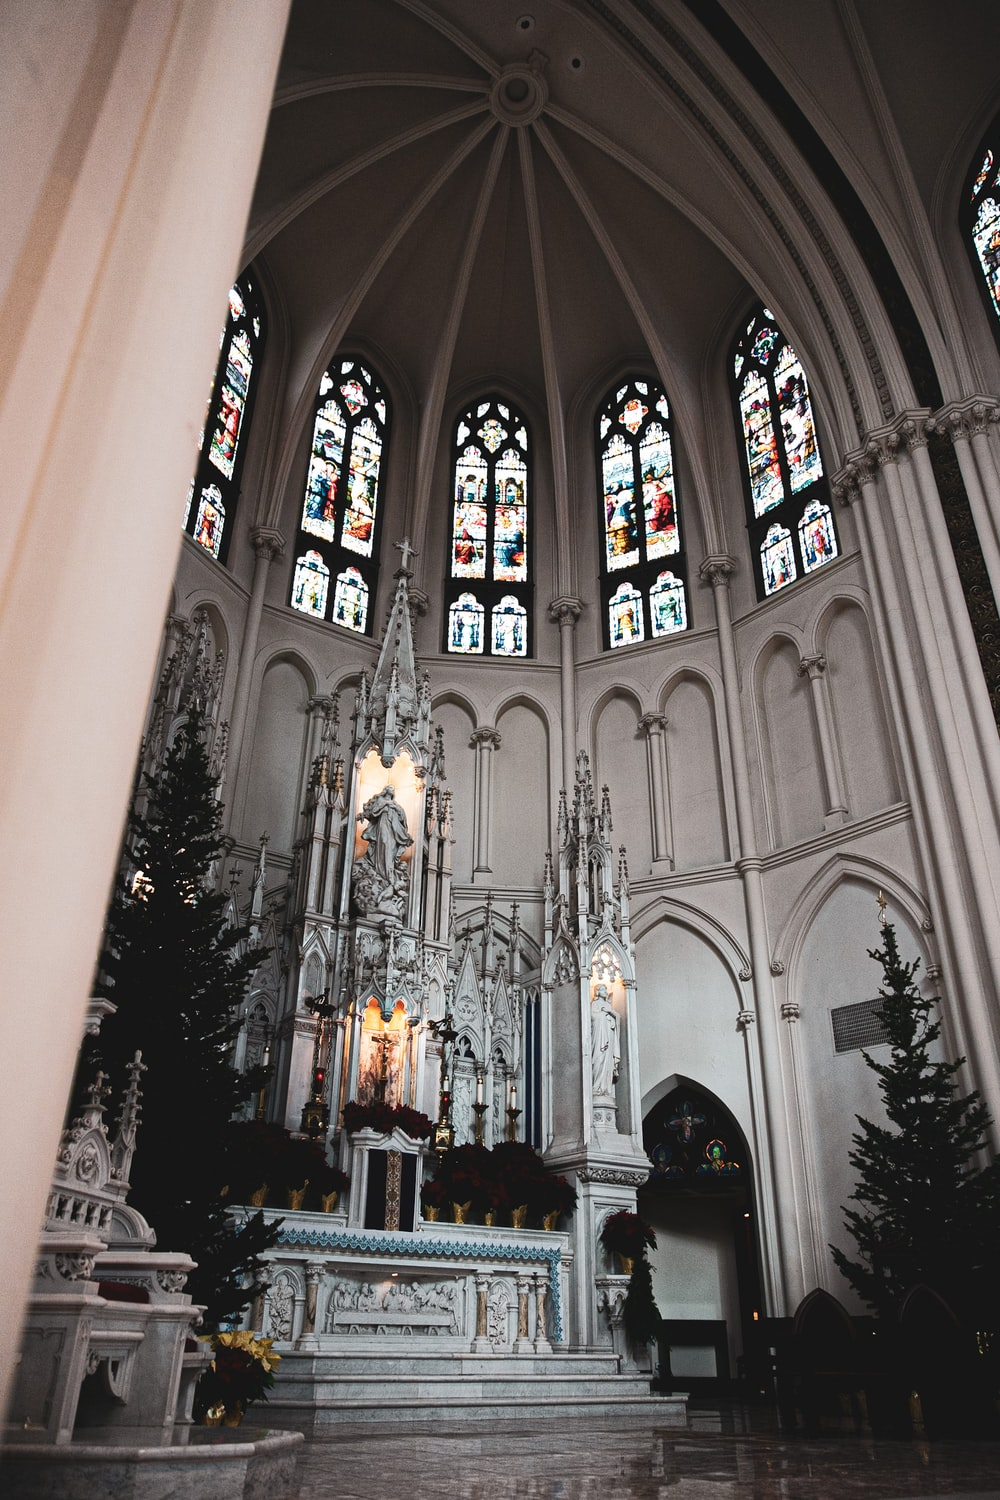 Christmas trees in cathedral